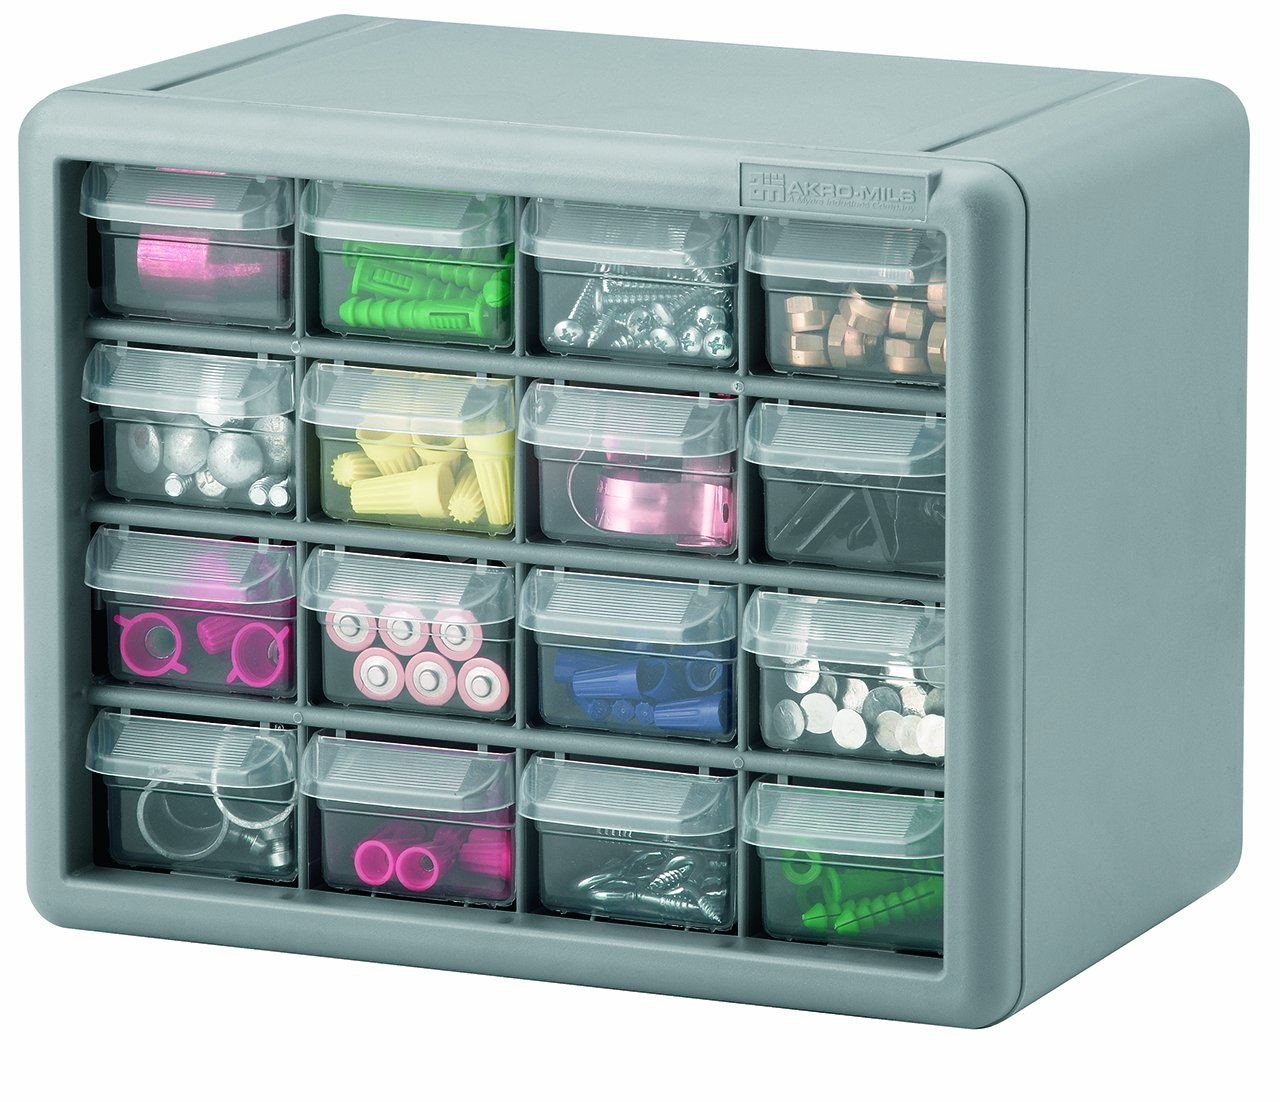 Akro-Mils 10716 16-Drawer Plastic Parts Storage Hardware and Craft Cabinet, 10-1/2-Inch by 8-1/2-Inch by 6-3/8-Inch, Gray